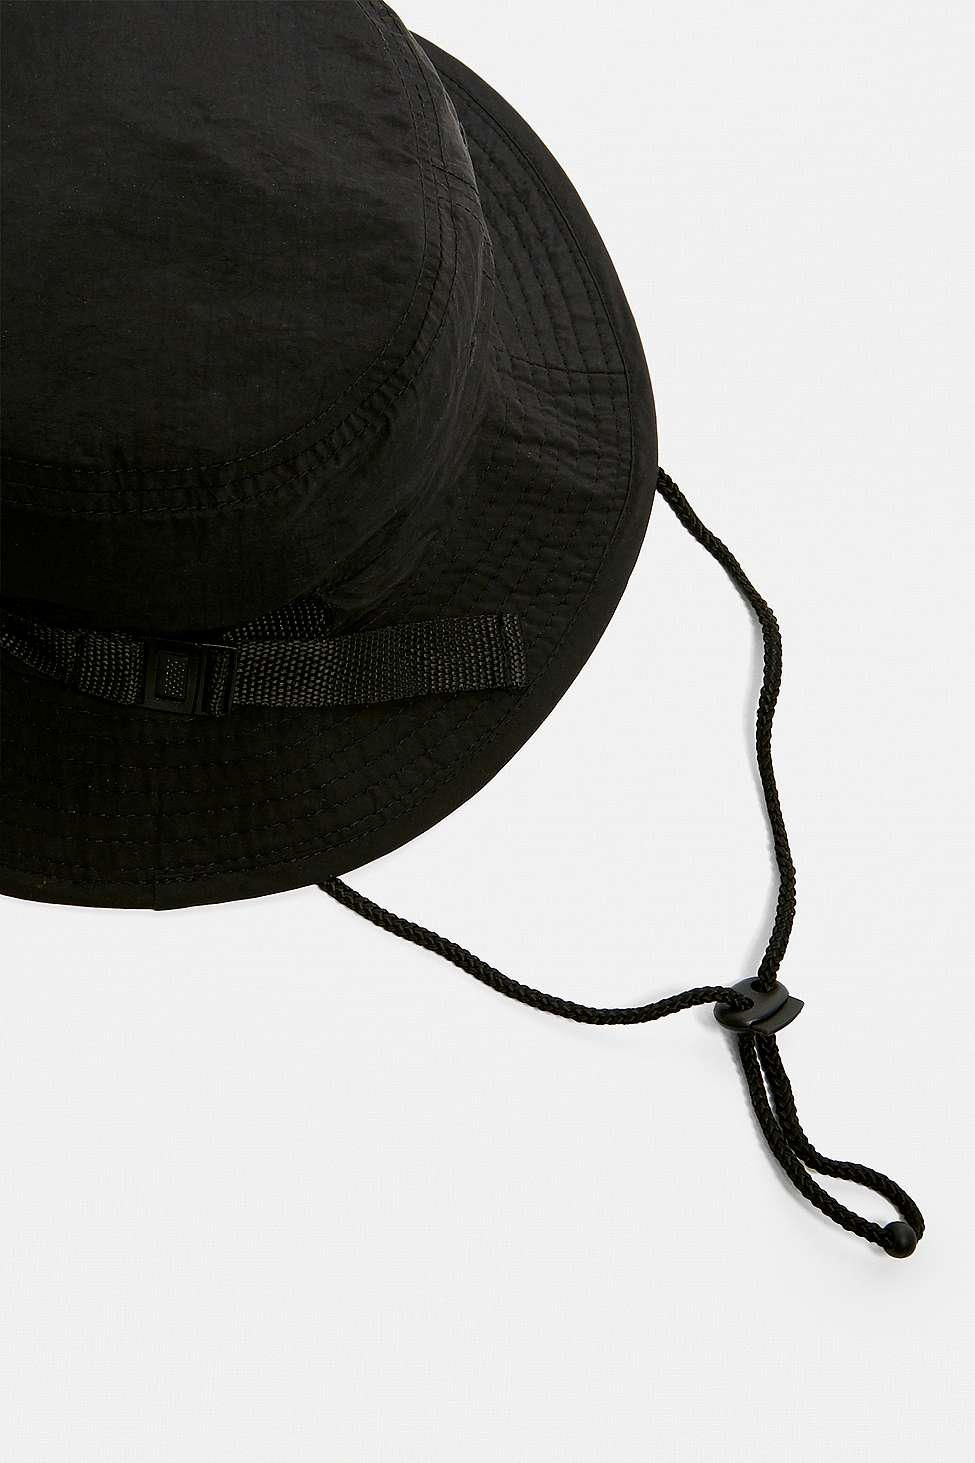 41a7899062d6c Urban Outfitters Uo Reflective Bucket Hat - Womens All in Black ...